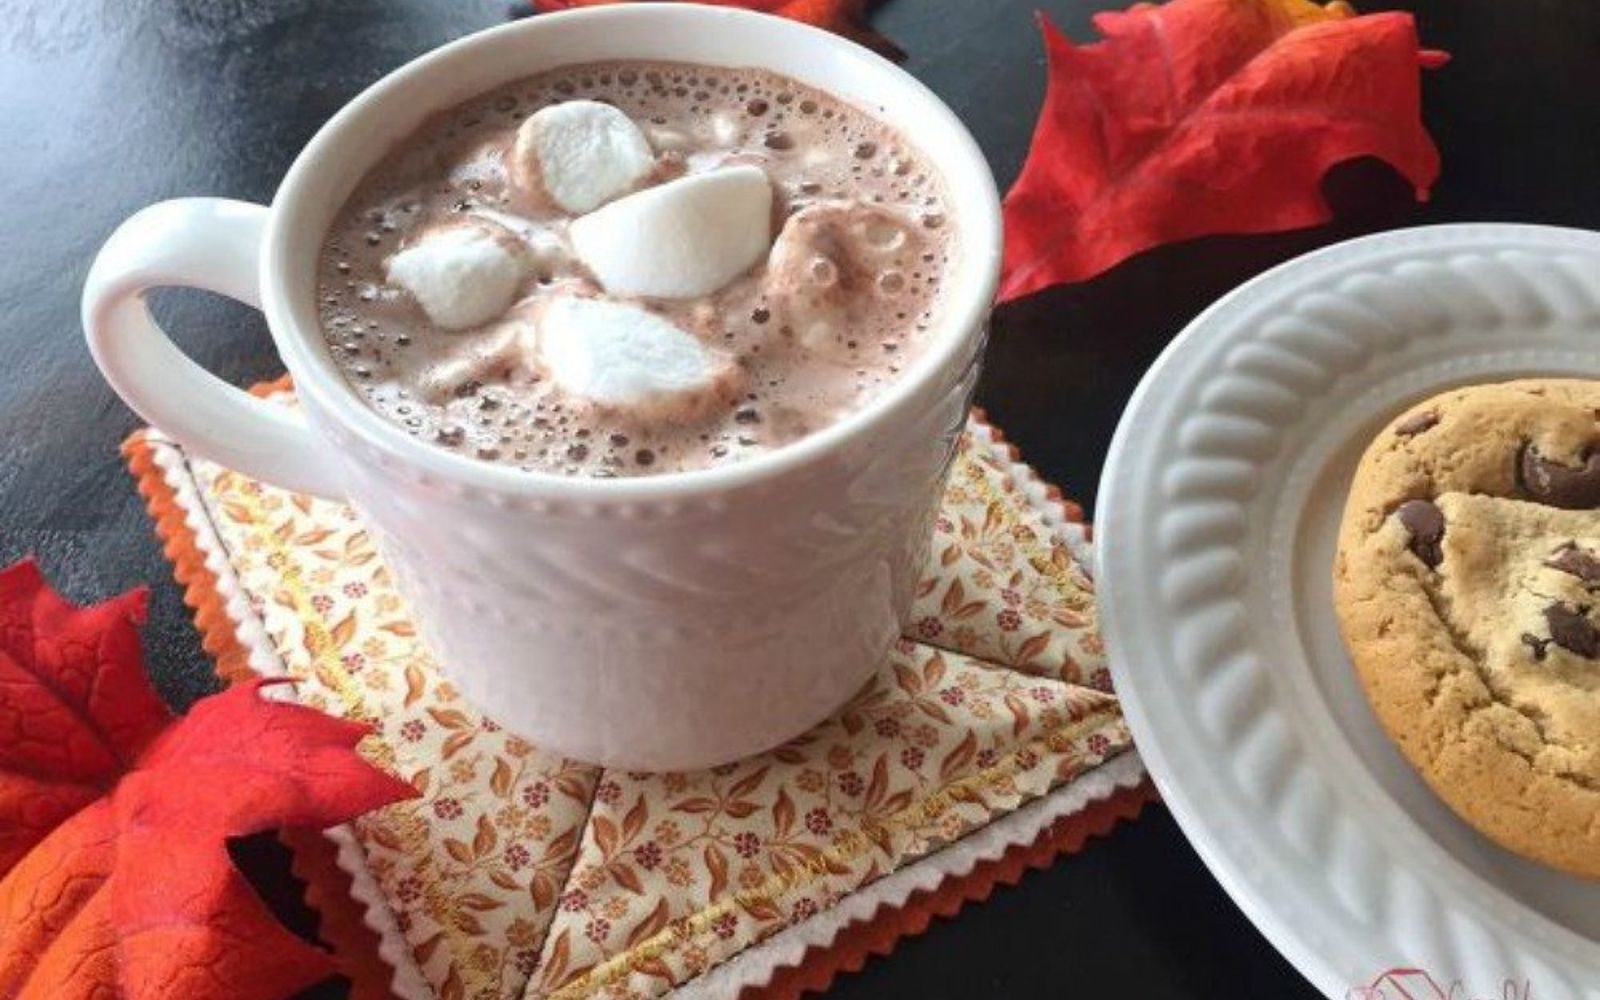 s 11 ways you never thought of using fabric in your kitchen, kitchen design, reupholster, As gorgeous coasters for hot cocoa mugs